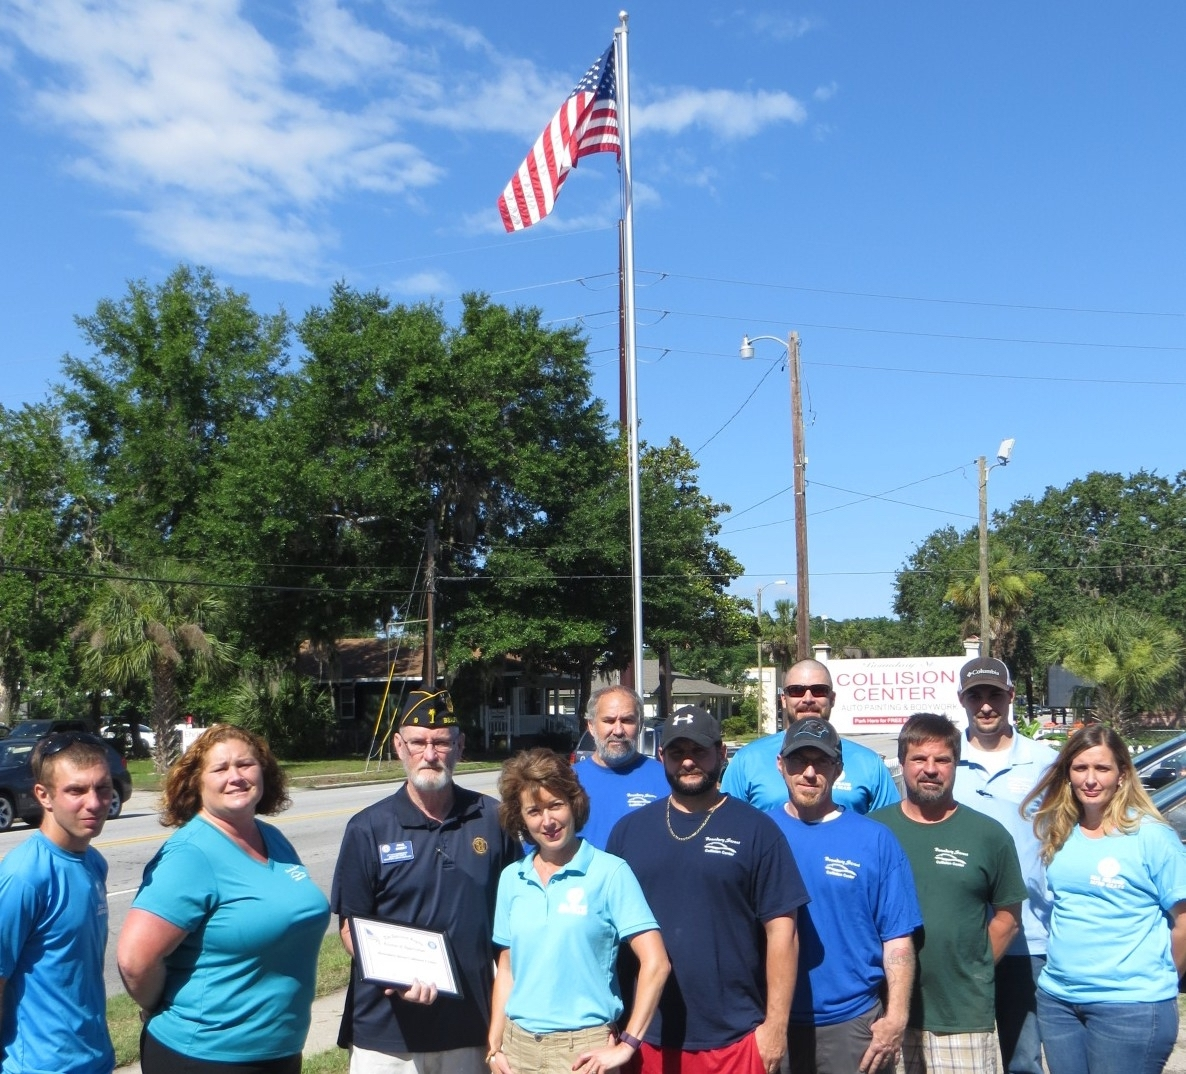 American Legion Beaufort Post 9 is striving to promote both patriotism and businesses in the Beaufort area by calling attention to those that proudly display the U.S. flag at their location. Post 9 presents those enterprises with a framed certificate thanking them. Here, Post 9 Vice Commander Paul Sweet presents Boundary Street Collision & Sea Island Auto Glass owner Lisa Melvin and staff with a certificate for displaying the nation's flag.